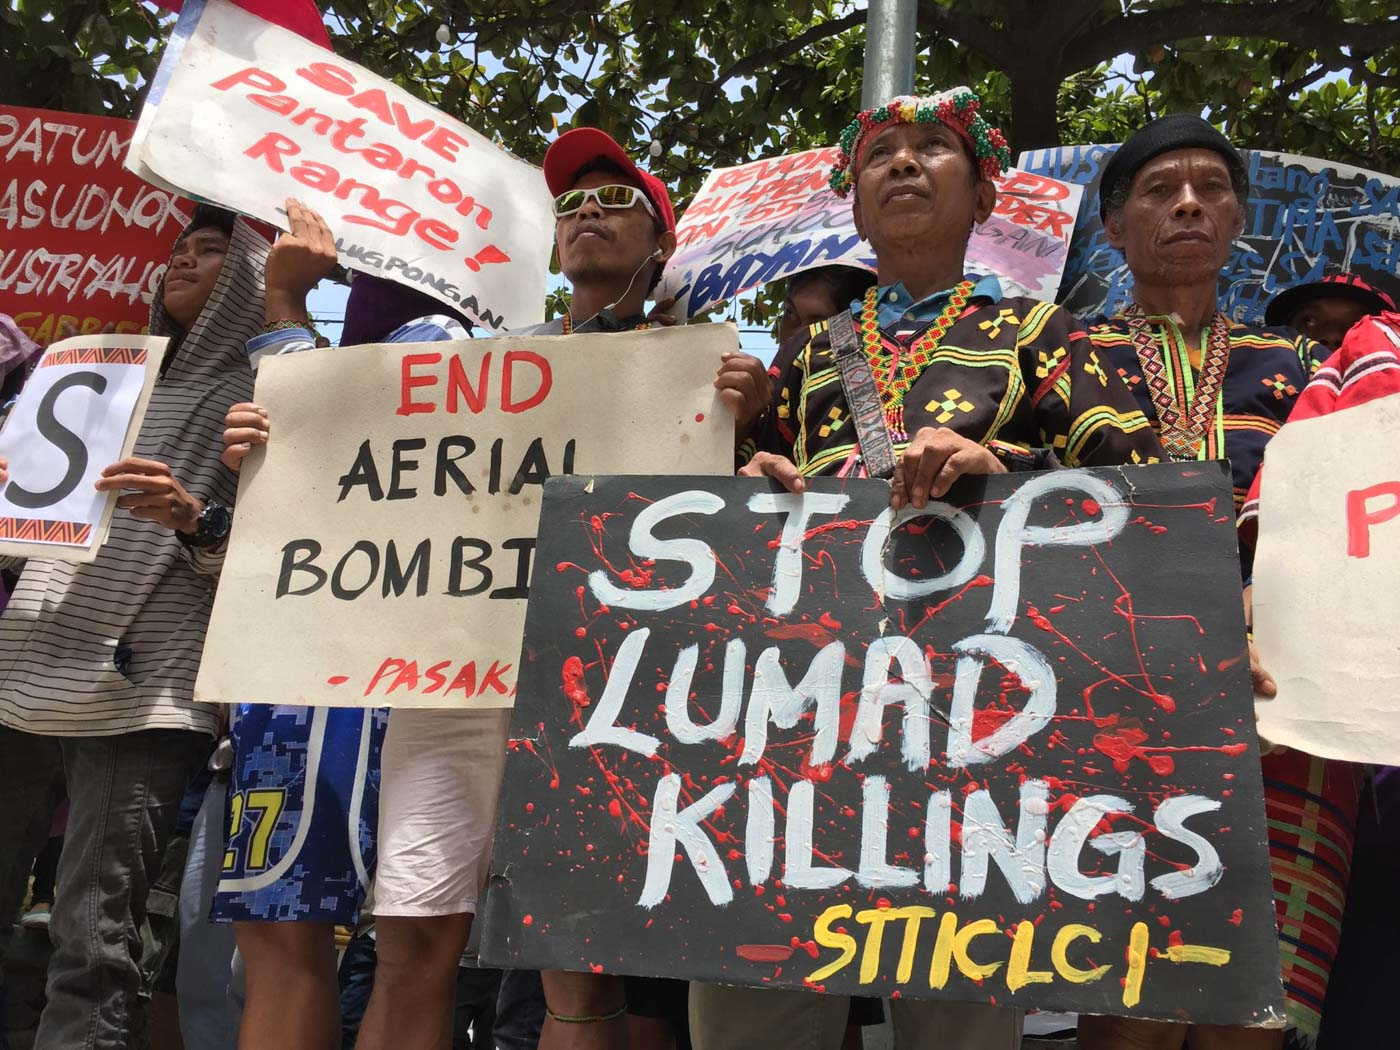 DAVAO CITY. Lumad leaders from Talaingod in Southern Mindanao join the United People's SONA at the Freedom Park in Davao City, calling for an end to martial law and a stop to the attacks on Lumad schools and communities on July 22. Photo courtesy of Kilab Multimedia